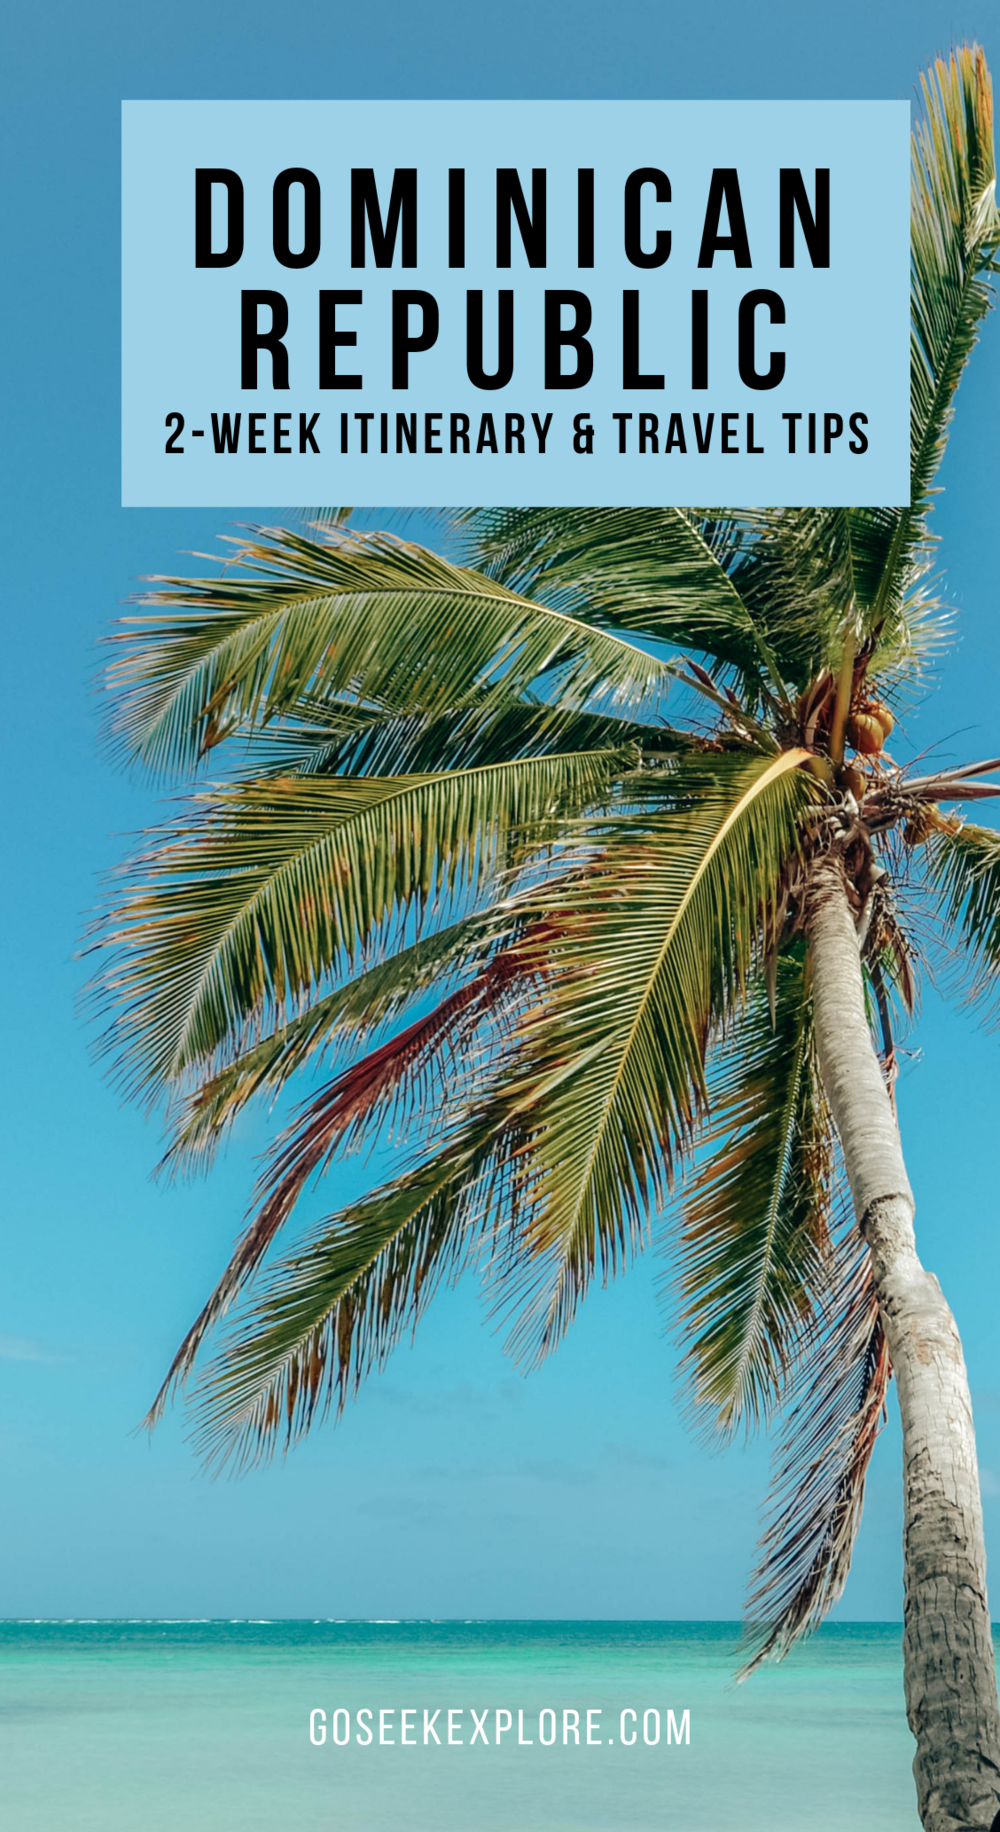 One of the most beautiful islands in the Caribbean! This 2-week Dominican Republic travel itinerary covers Punta Cana, Santo Domingo, Las Terrenas, La Romana, and Bayahibe, how to get to each location, things to do, and where we stayed! A must-read if you're planning a DR trip! #dominicanrepublic #caribbean #goseekexplore